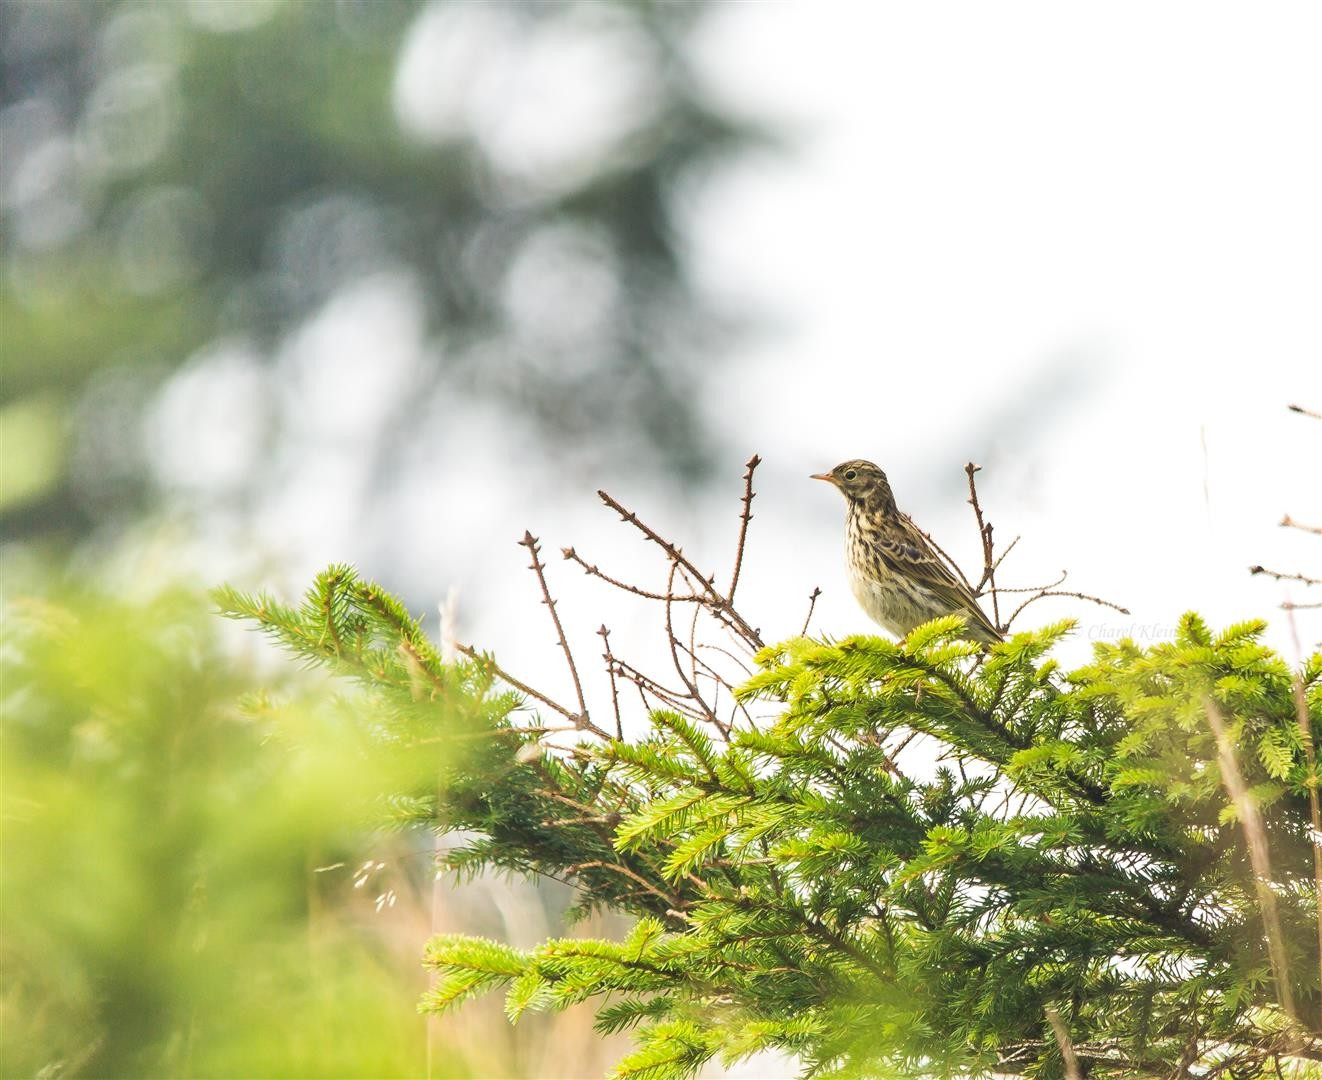 Meadow pipit  (Anthus pratensis)  -- Belchen  / Germany